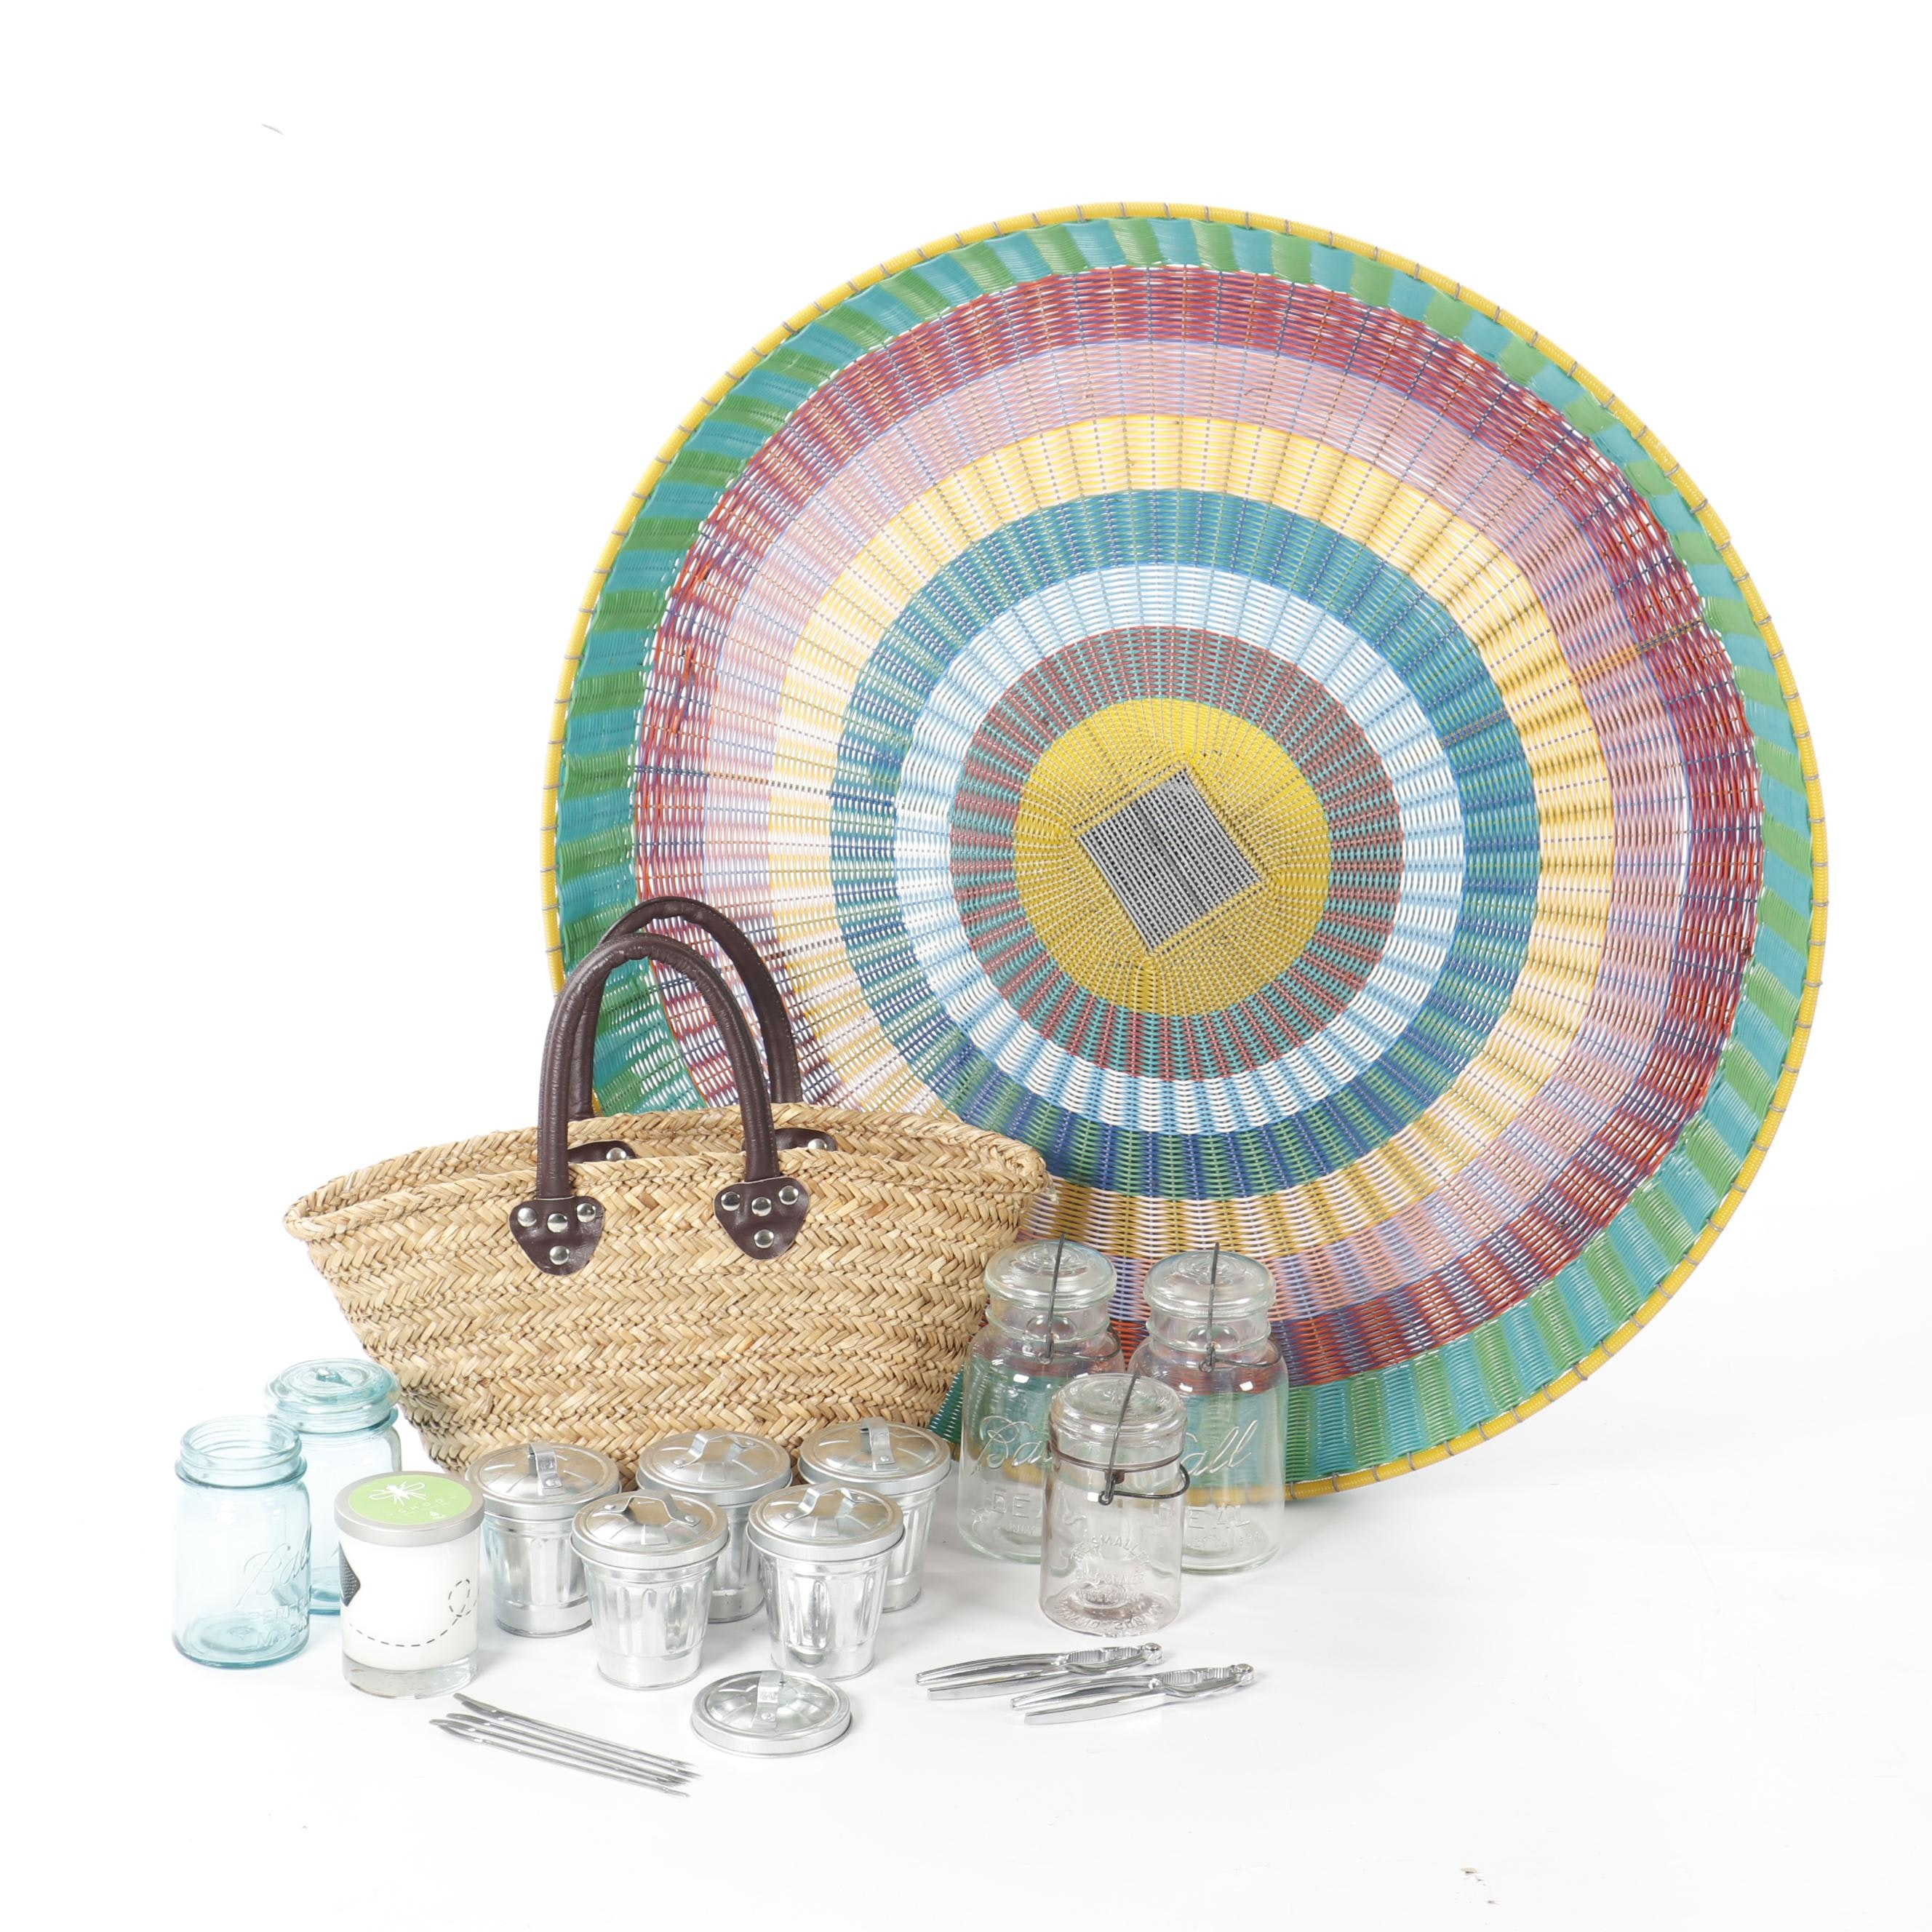 Colorful Woven Basket, Ball Mason Jars, Lobster Cans and Candle